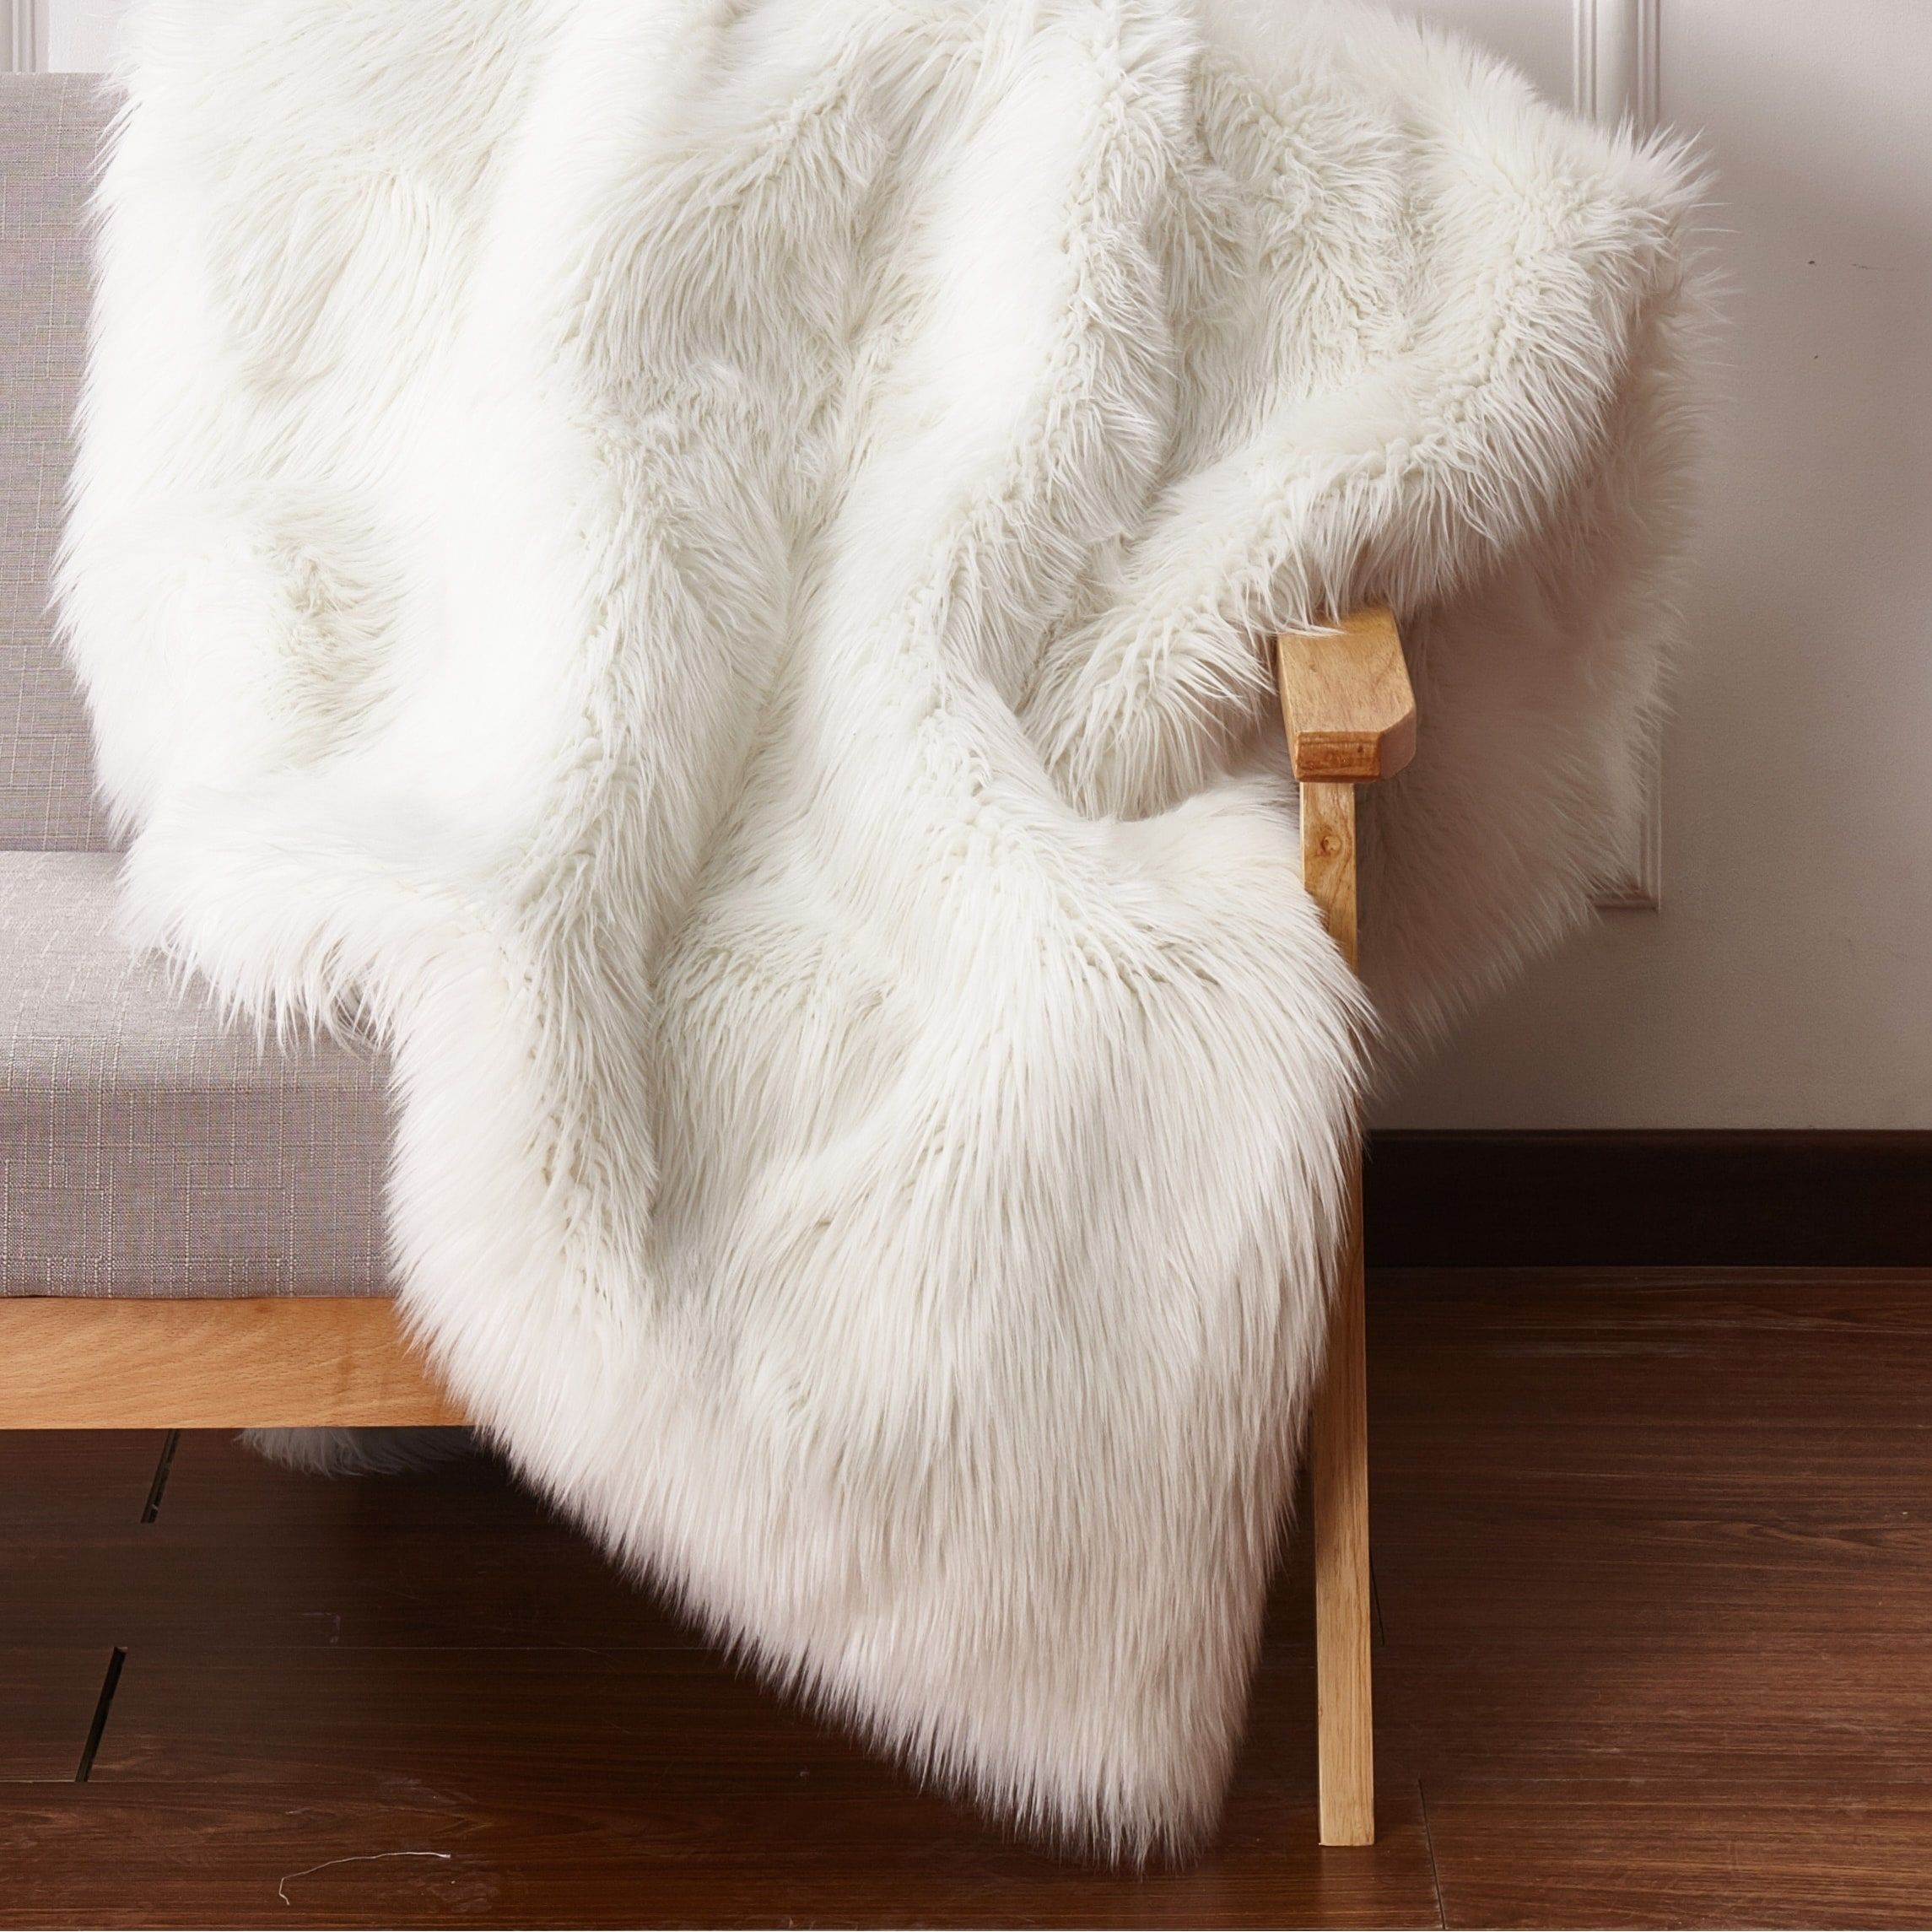 Animal Feel Faux Fur Area Rug With Suede Backing 5 X 7 Off White Ivory More Than 1 Inch Size